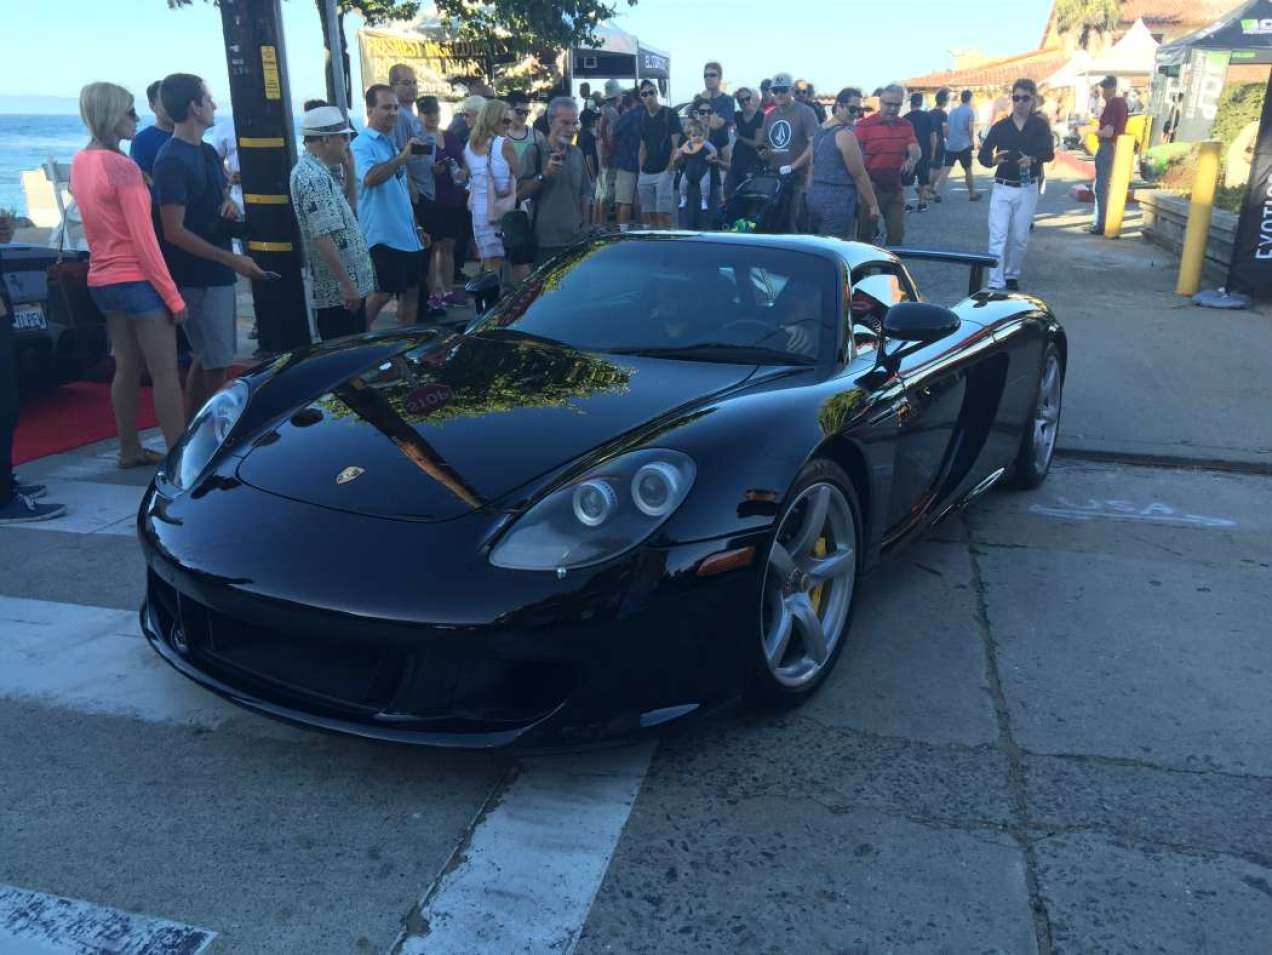 exotics on cannery row (19)